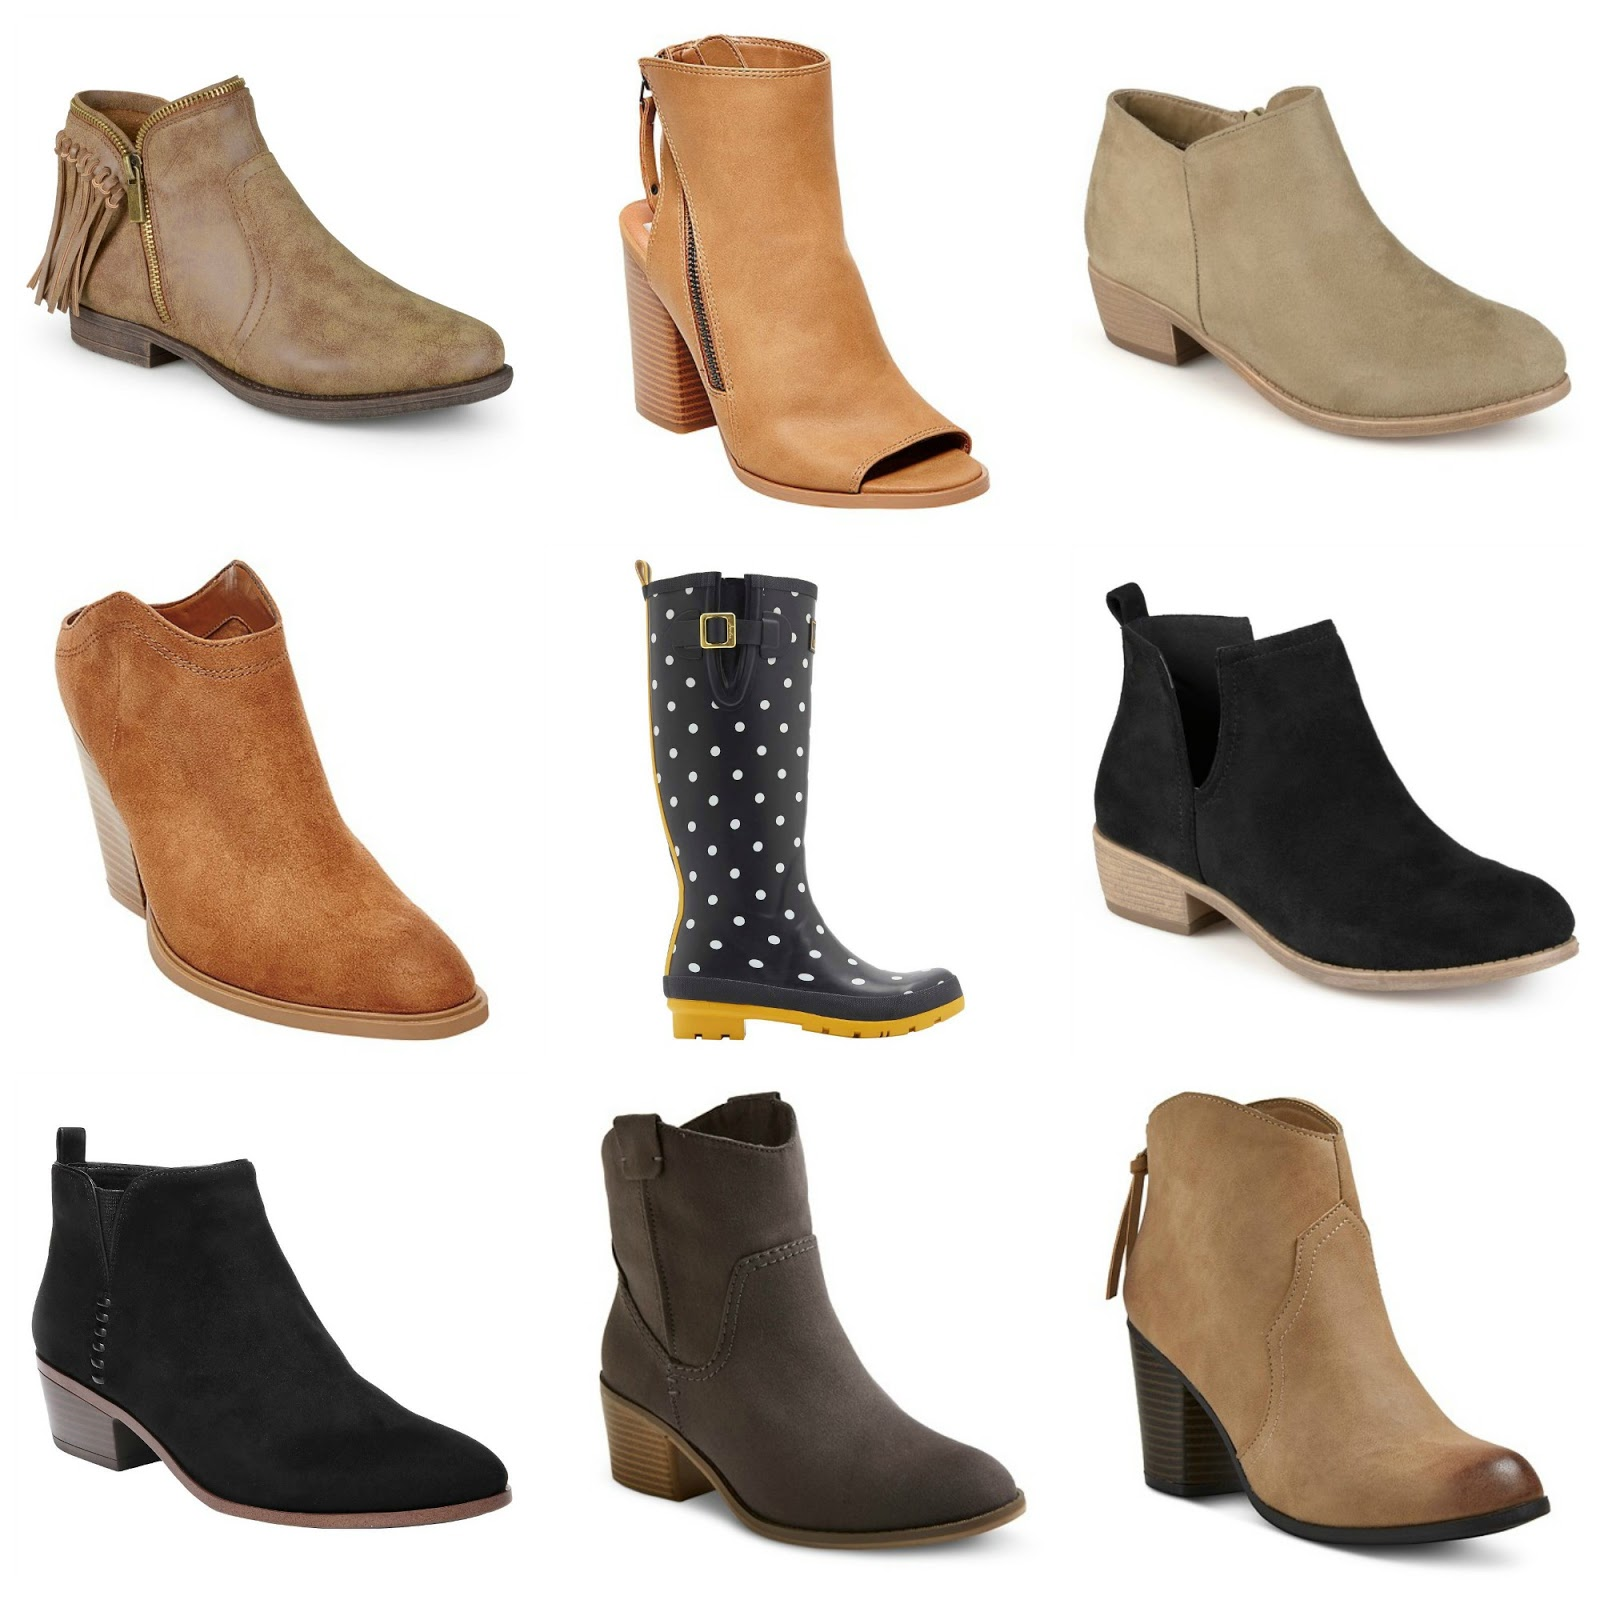 59c1a6f6c32 Friday Favorites - Fall Shoes!